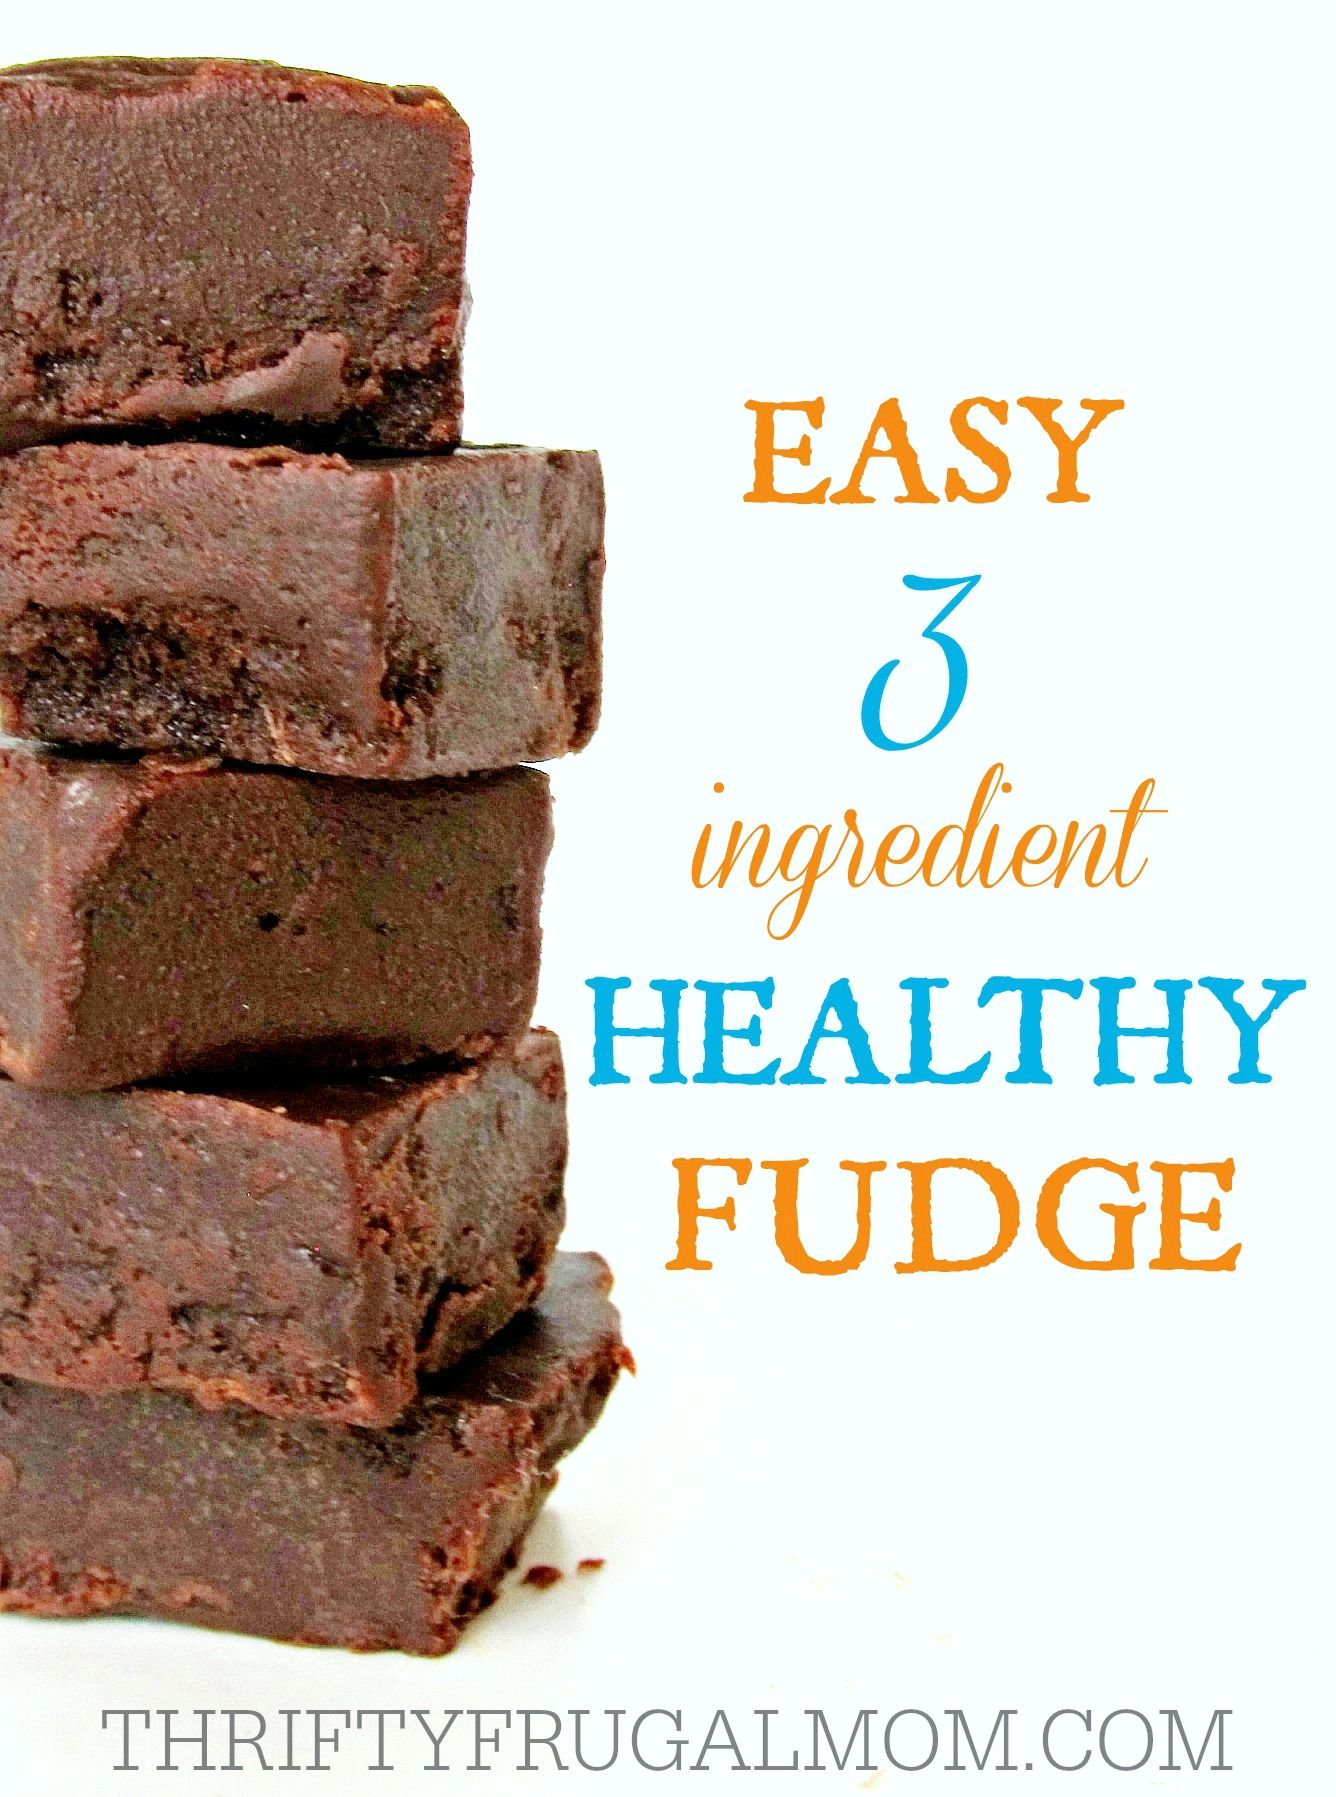 Made with just coconut oil, honey and cocoa powder, this easy healthy fudge is a wholesome snack you can feel good about eating!  And hey, it's even chocolate!